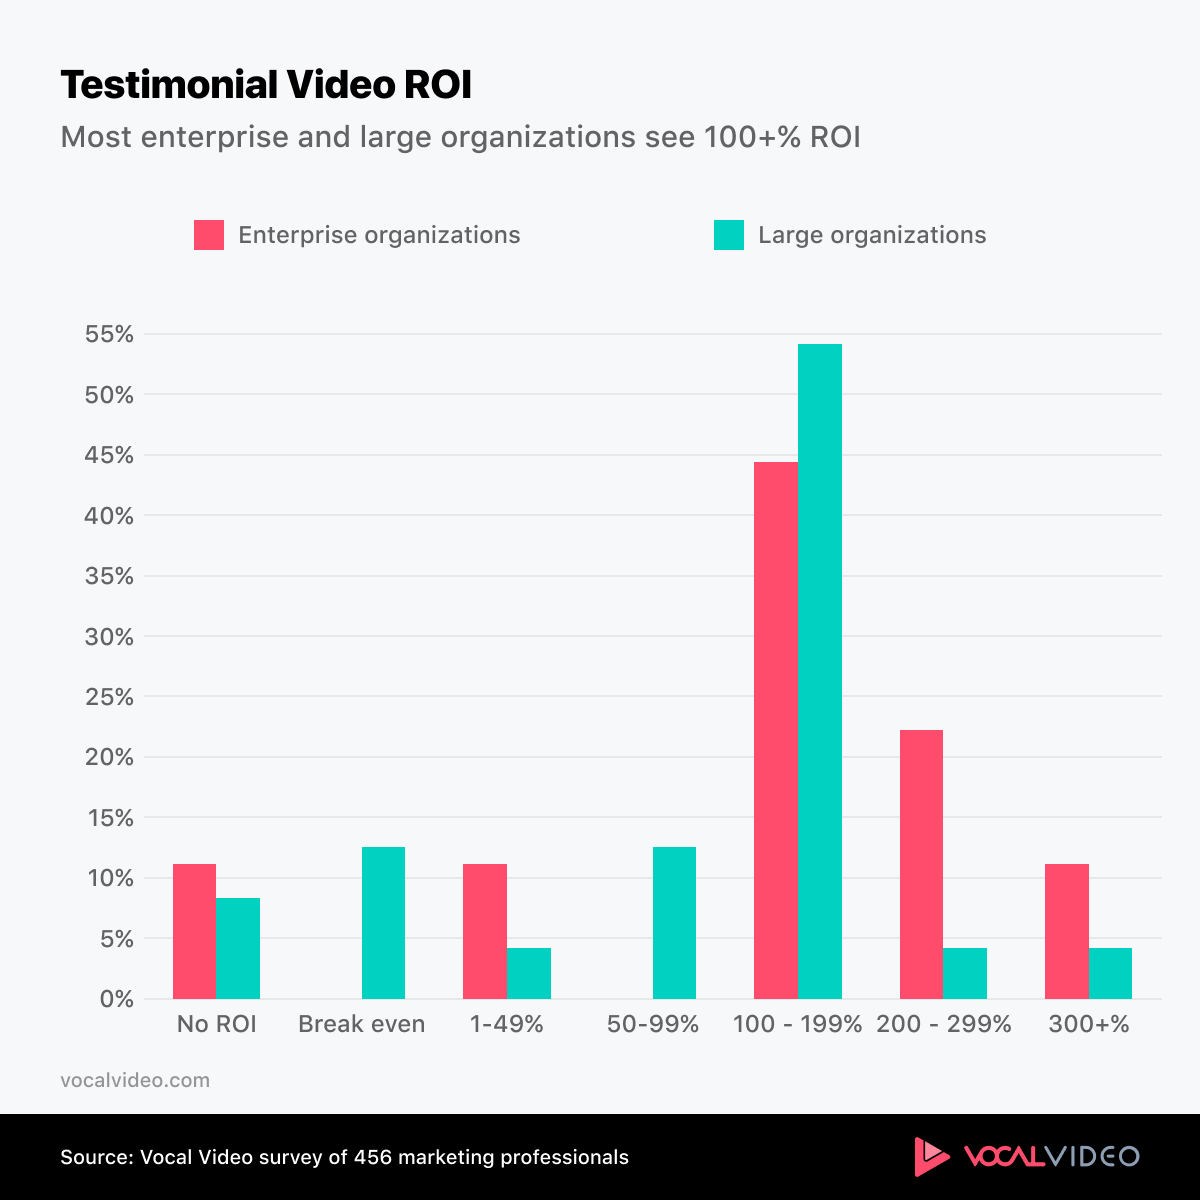 Chart showing the strong ROI from testimonial video for large organizations.